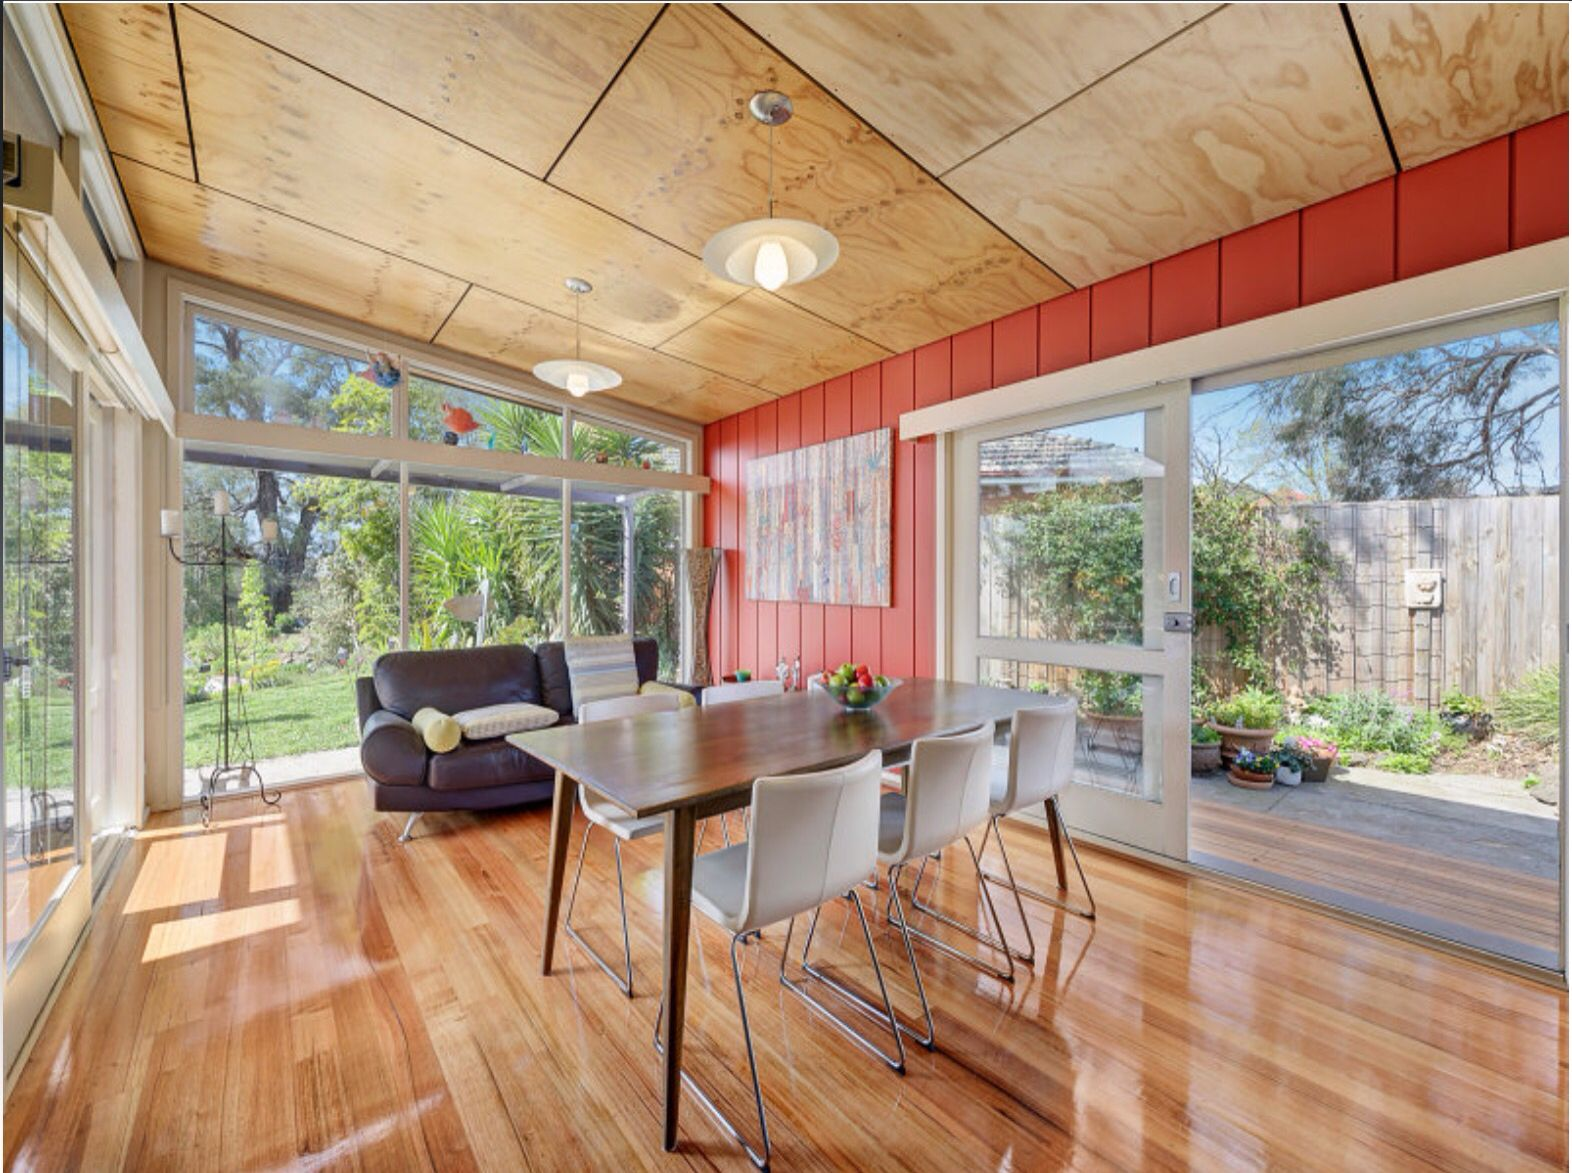 25+ best plywood ceiling ideas on pinterest | plywood kitchen